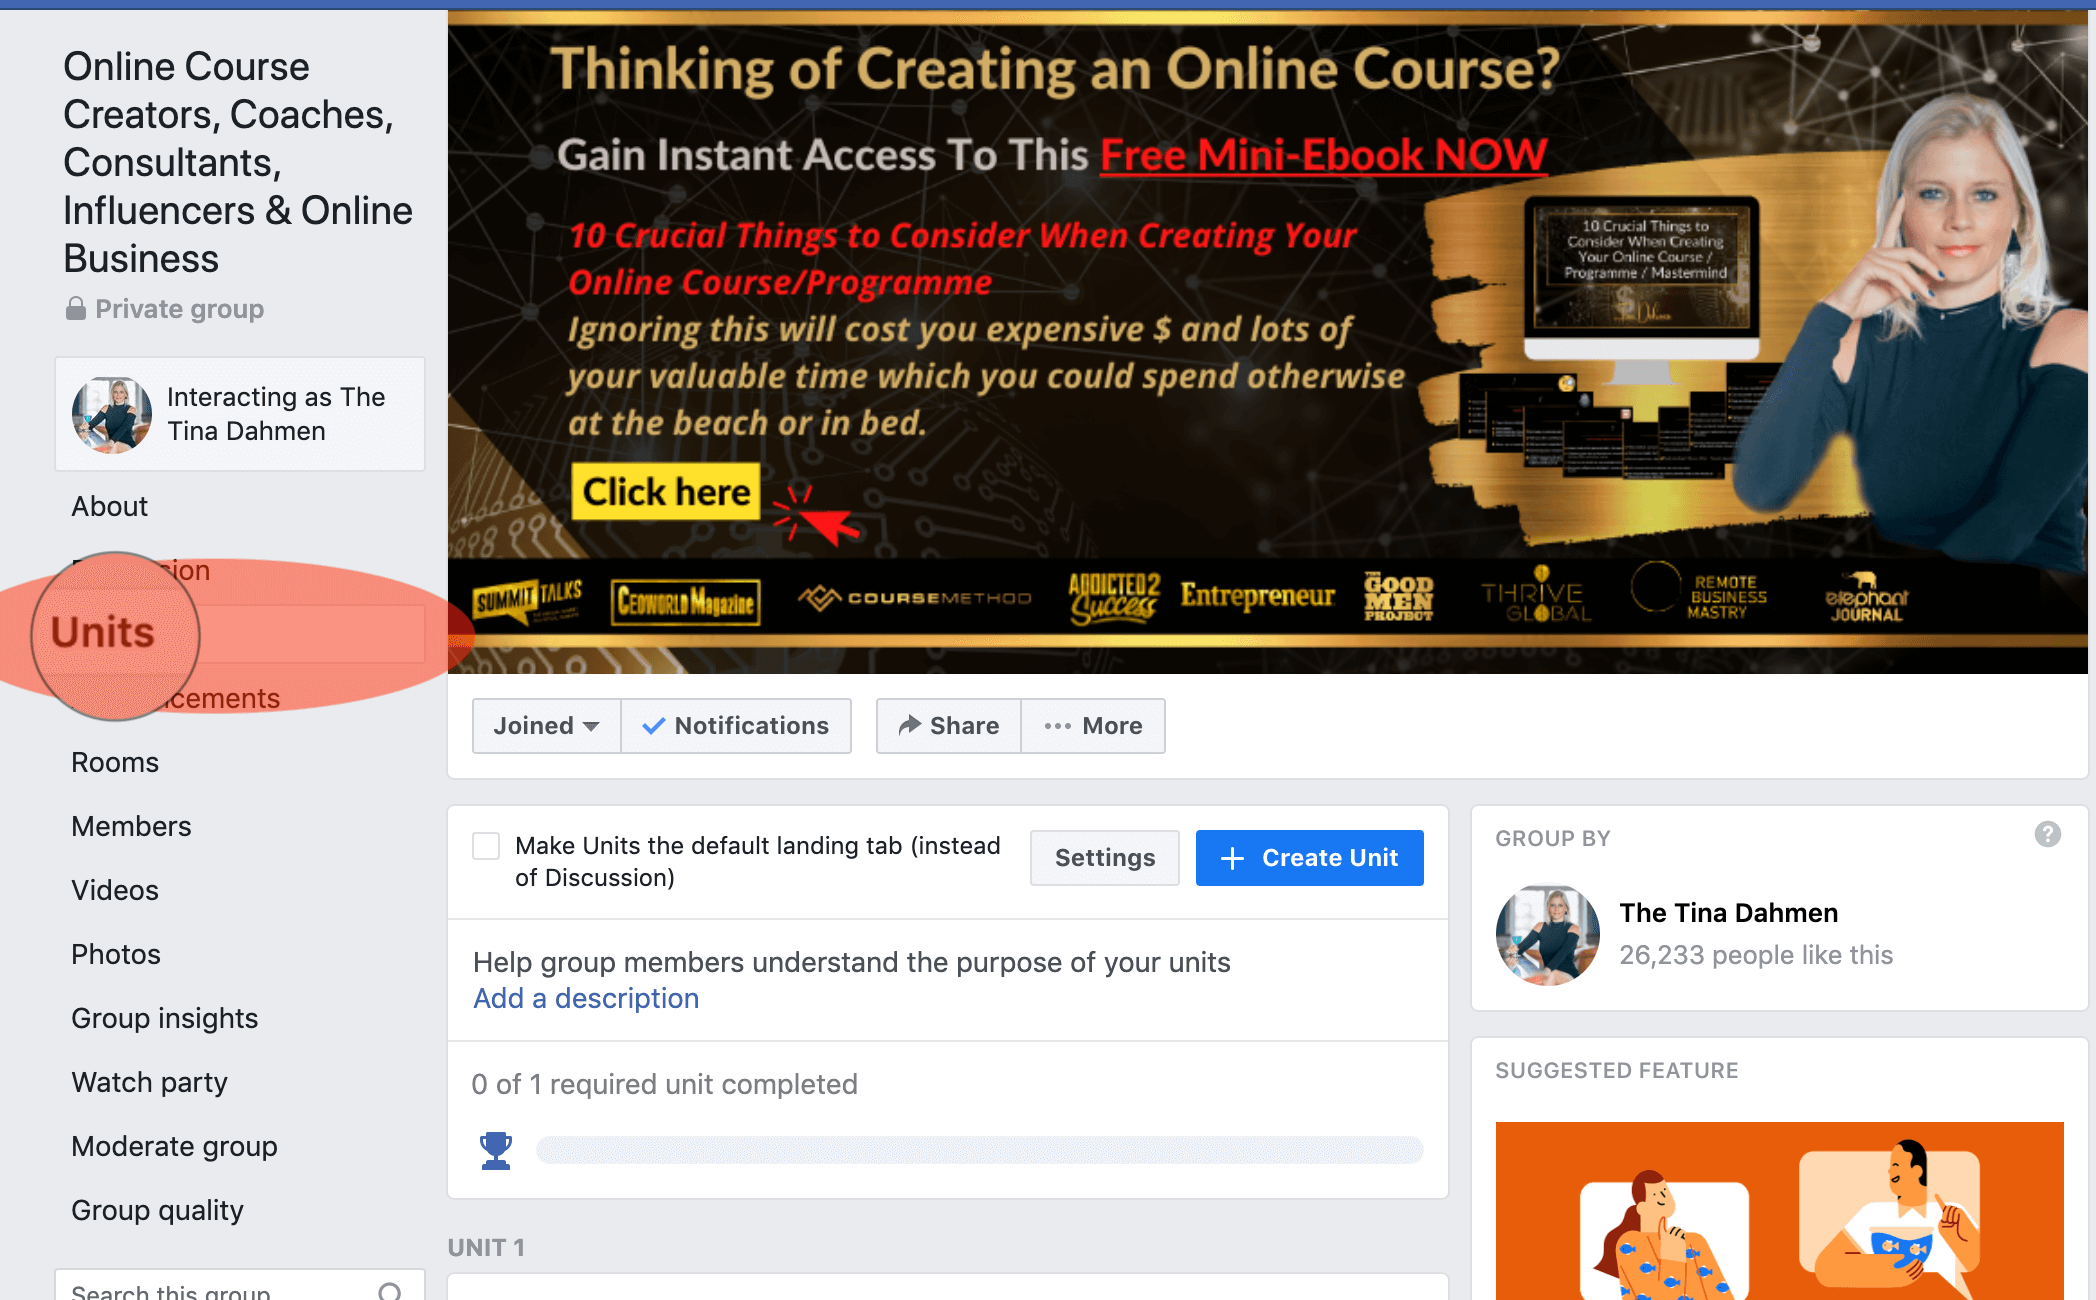 How to create an online course for free